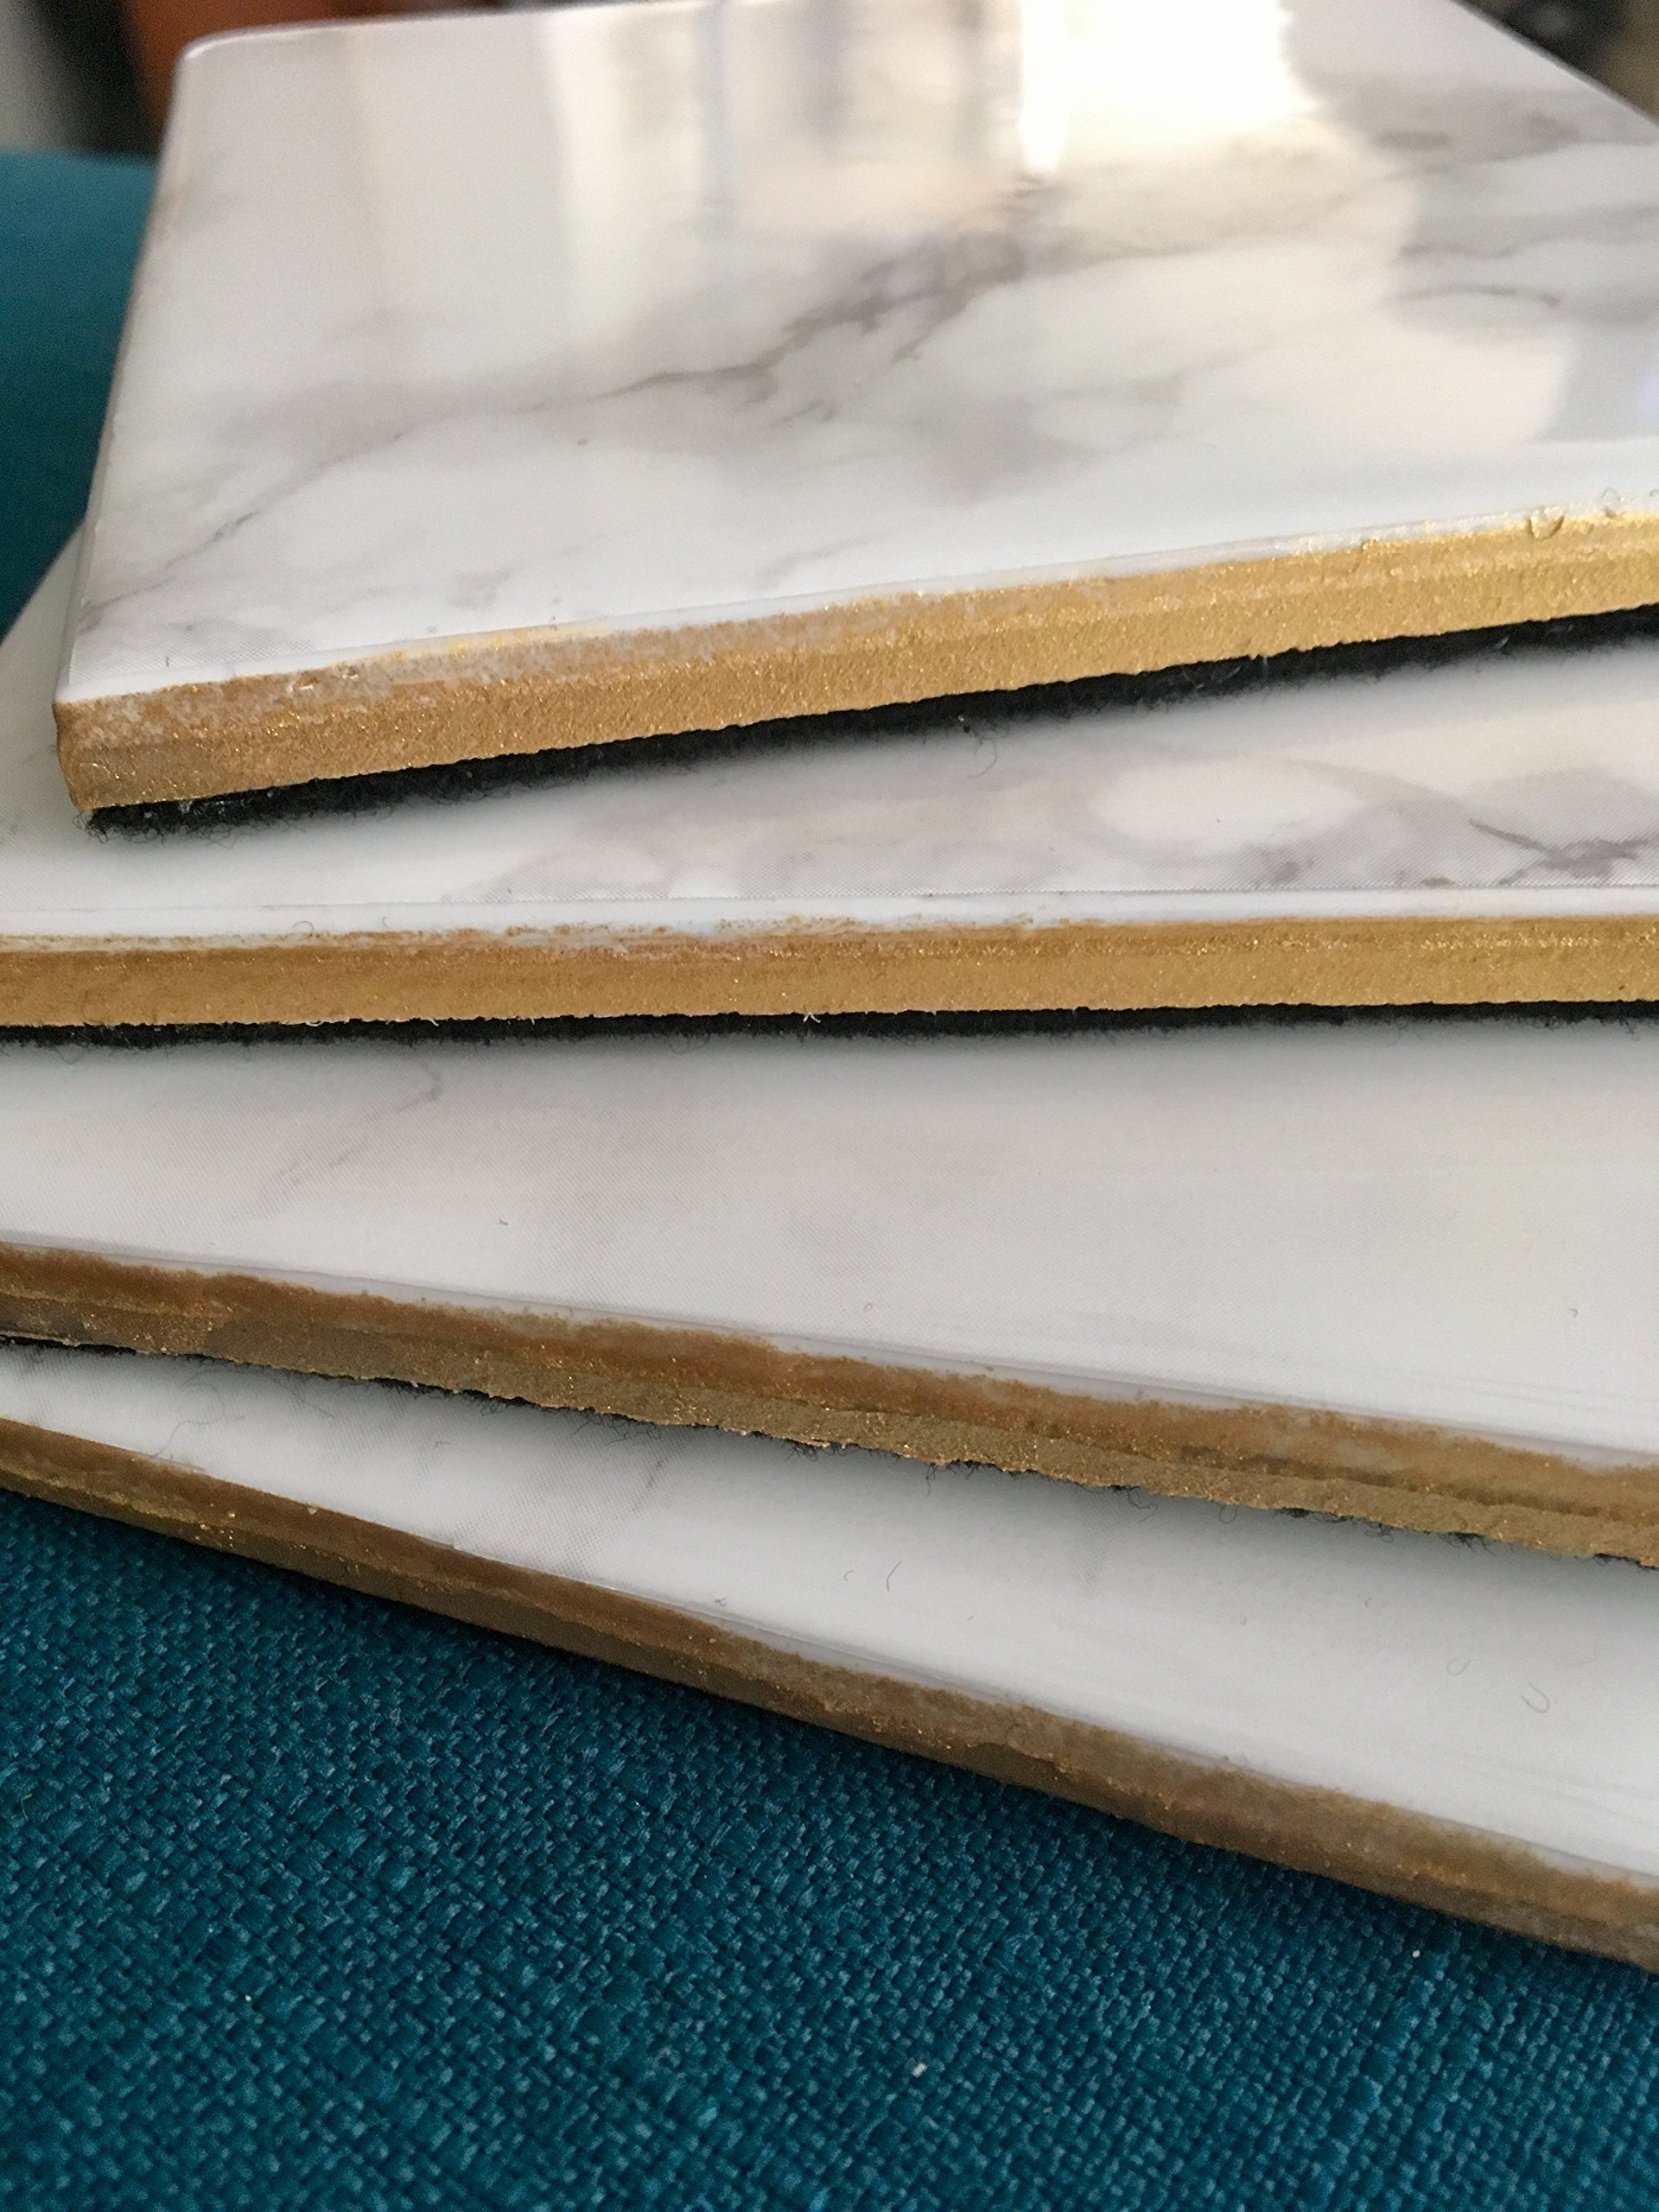 Marble and Gold Coasters Set of 4 - Minimalist Decor, Everyday Gift, Housewarming Gifts, Gift for Hostess, Birthday Gift, Coffee Tea Drinker, Wine Coasters